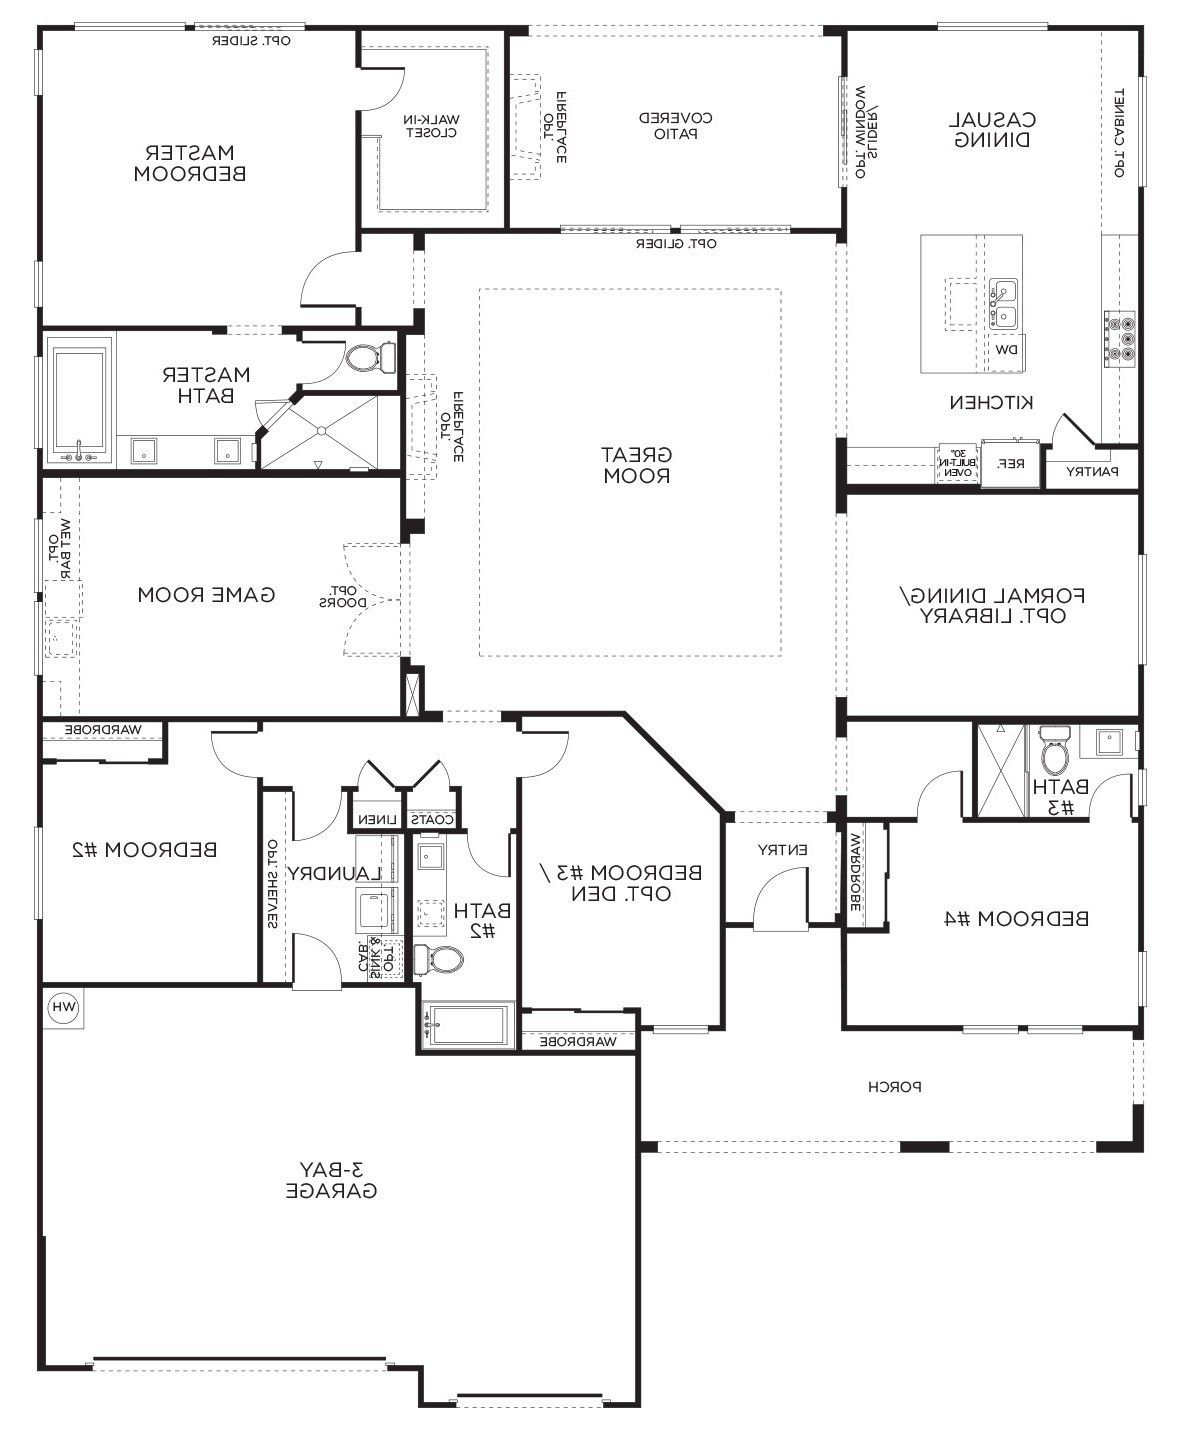 17 Awesome 5 Bedroom House Plans Narrow Lot 5 Bedroom House Plans Narrow Lot Unique 448 Best Icf Home I House Plans One Story Floor Plan 4 Bedroom Pardee Homes